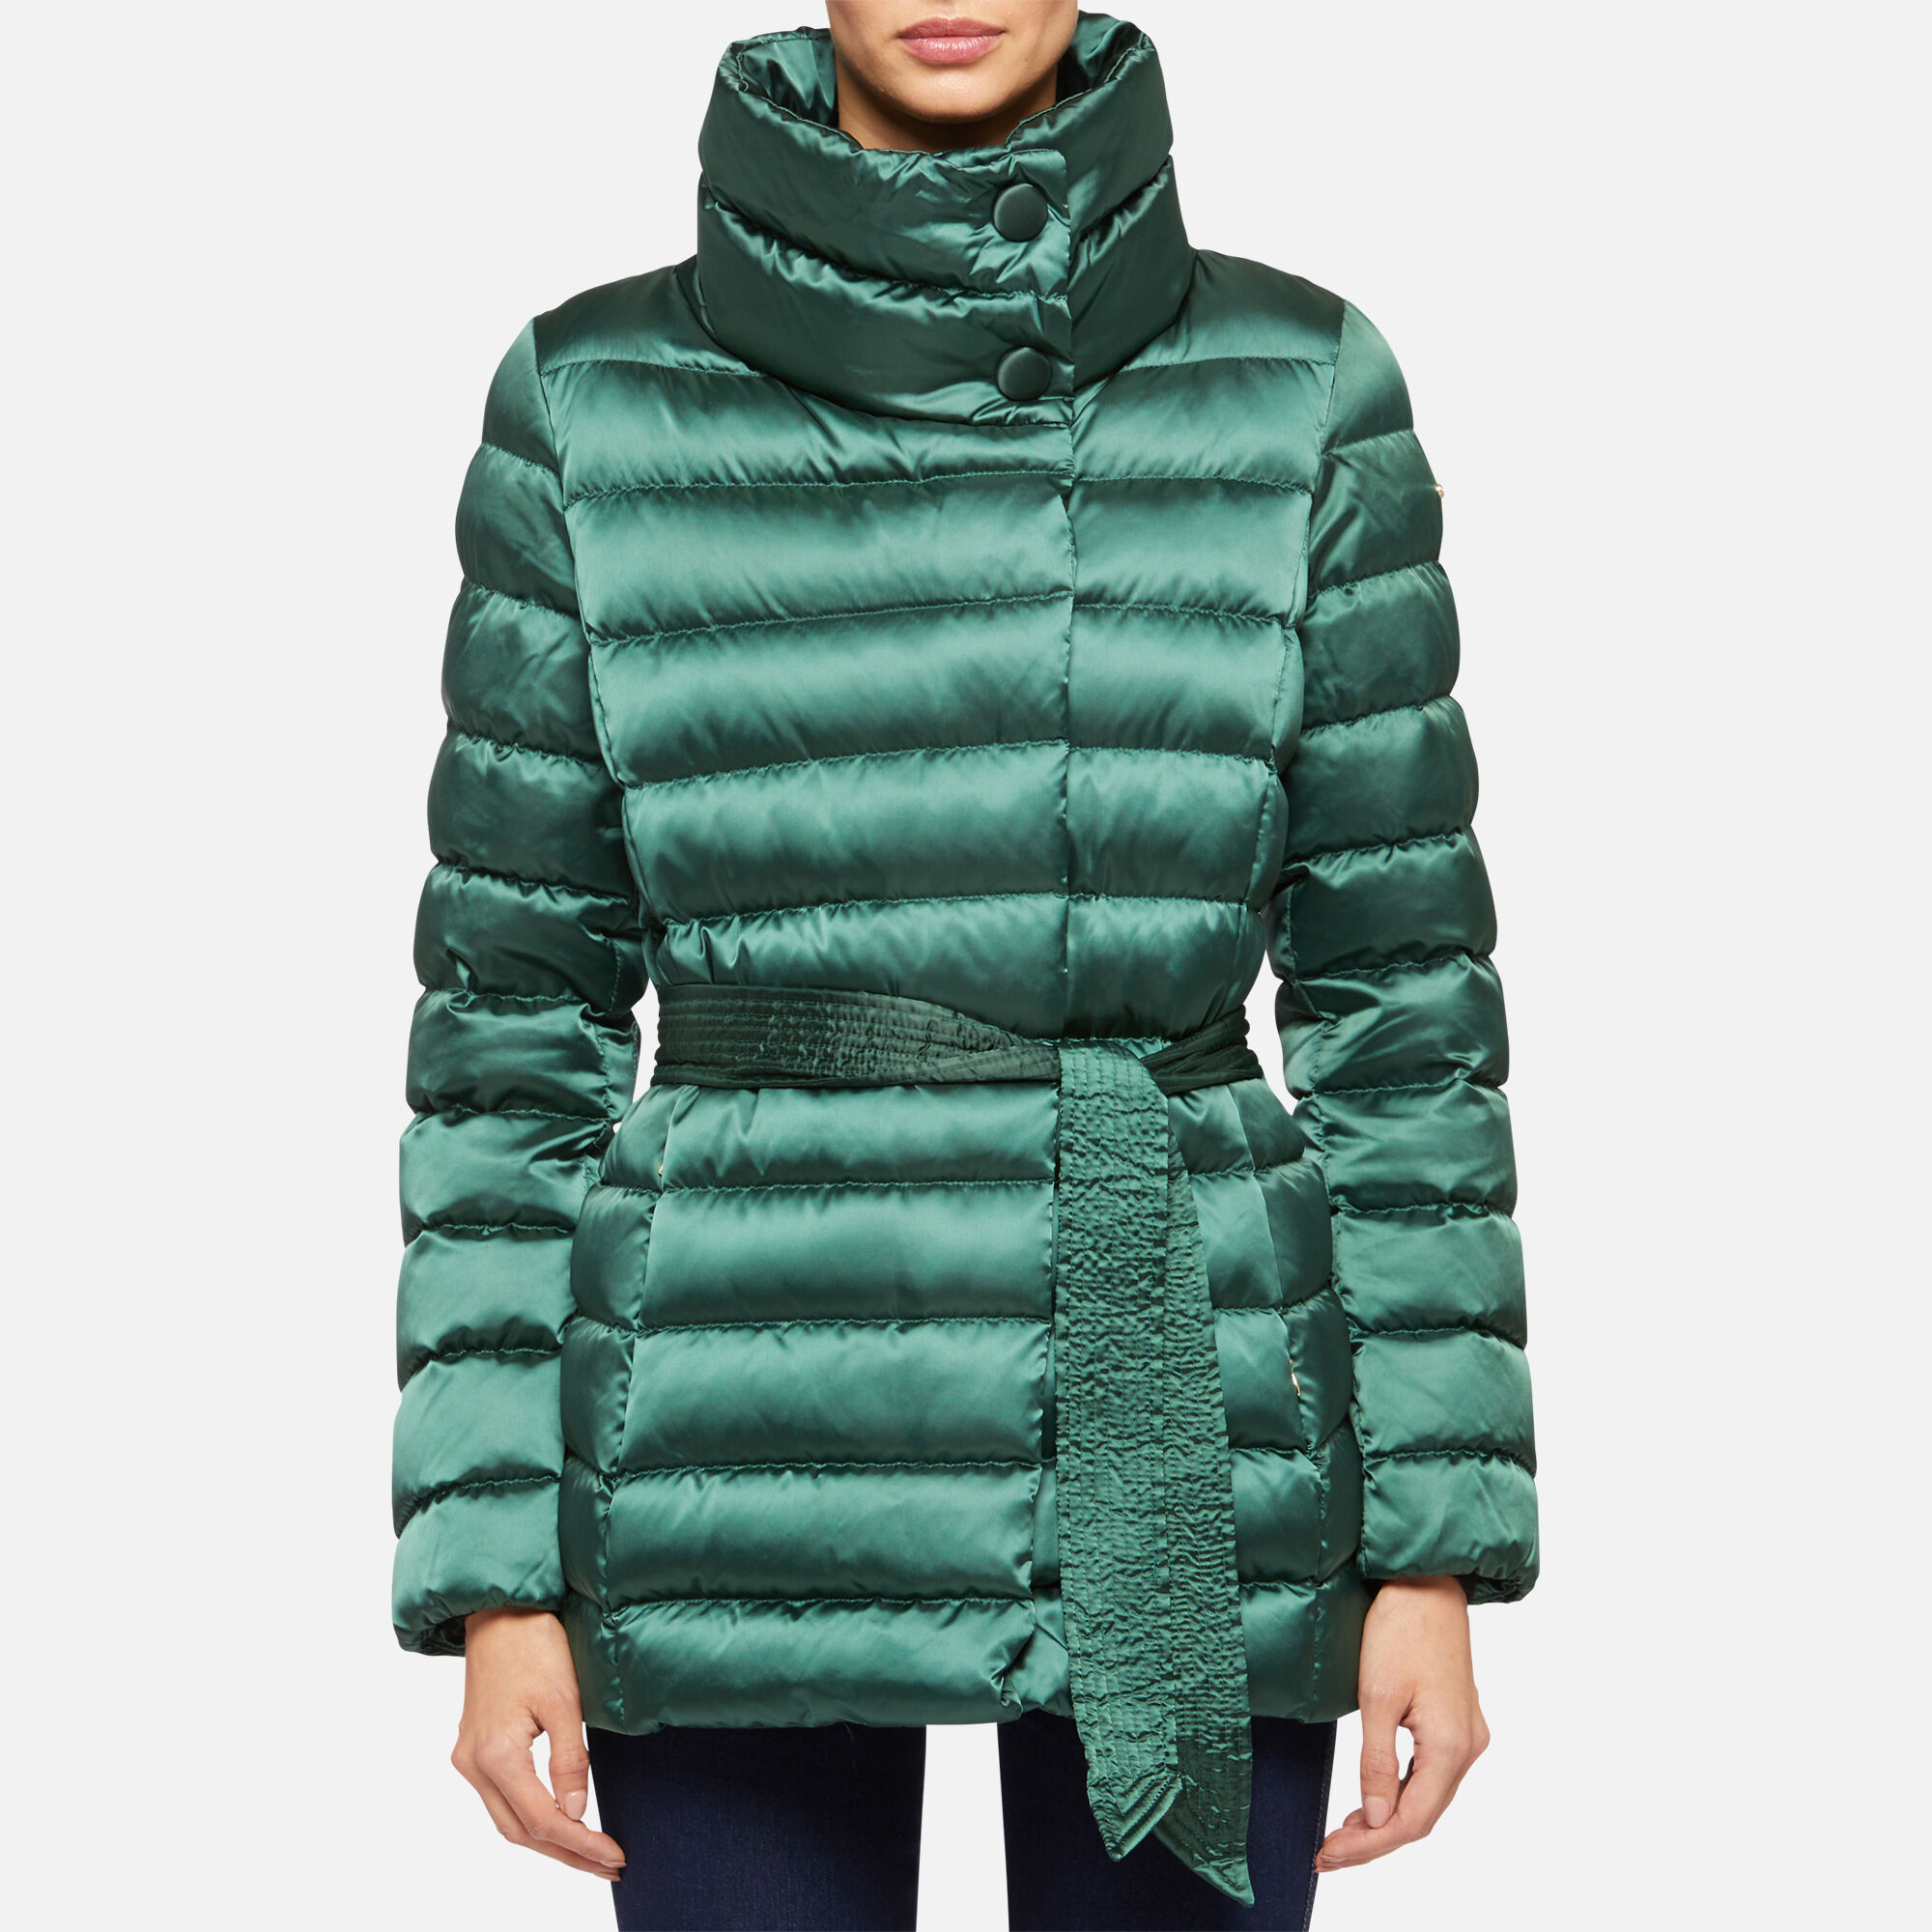 Geox Women's W CHLOO Green Down Jacket | Geox¨ Official Store